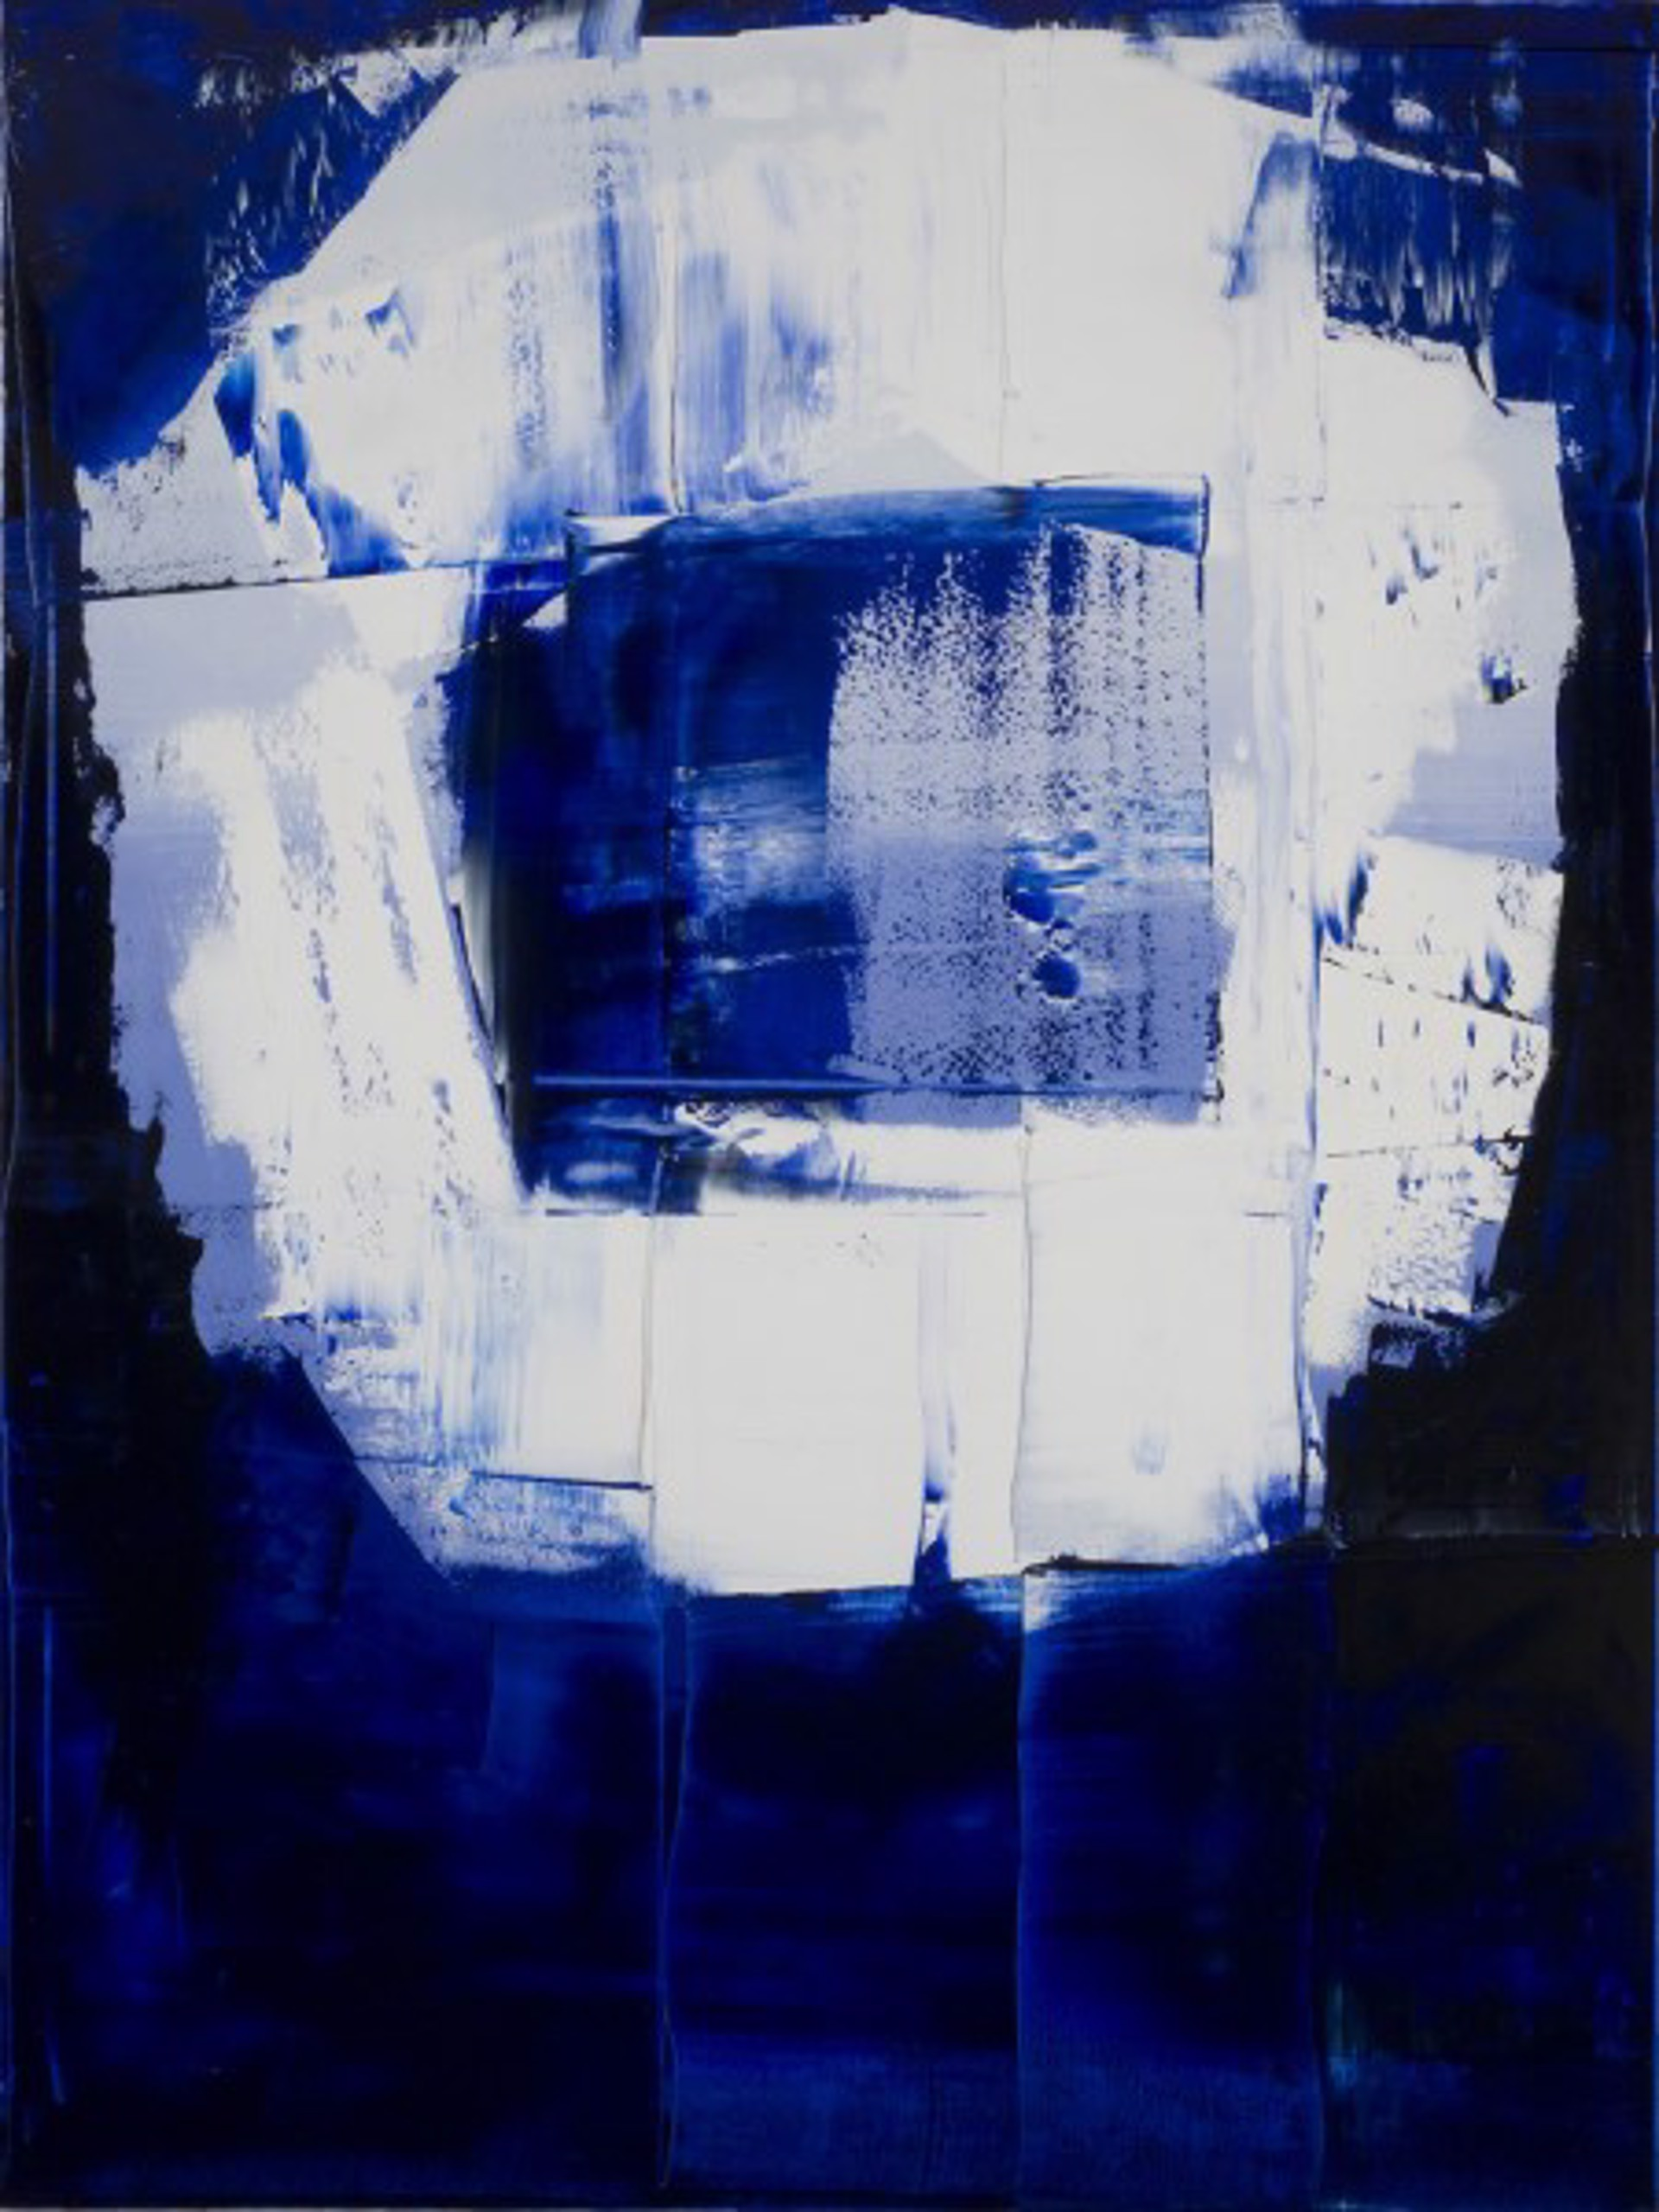 Blue-White No. 3 by William Song